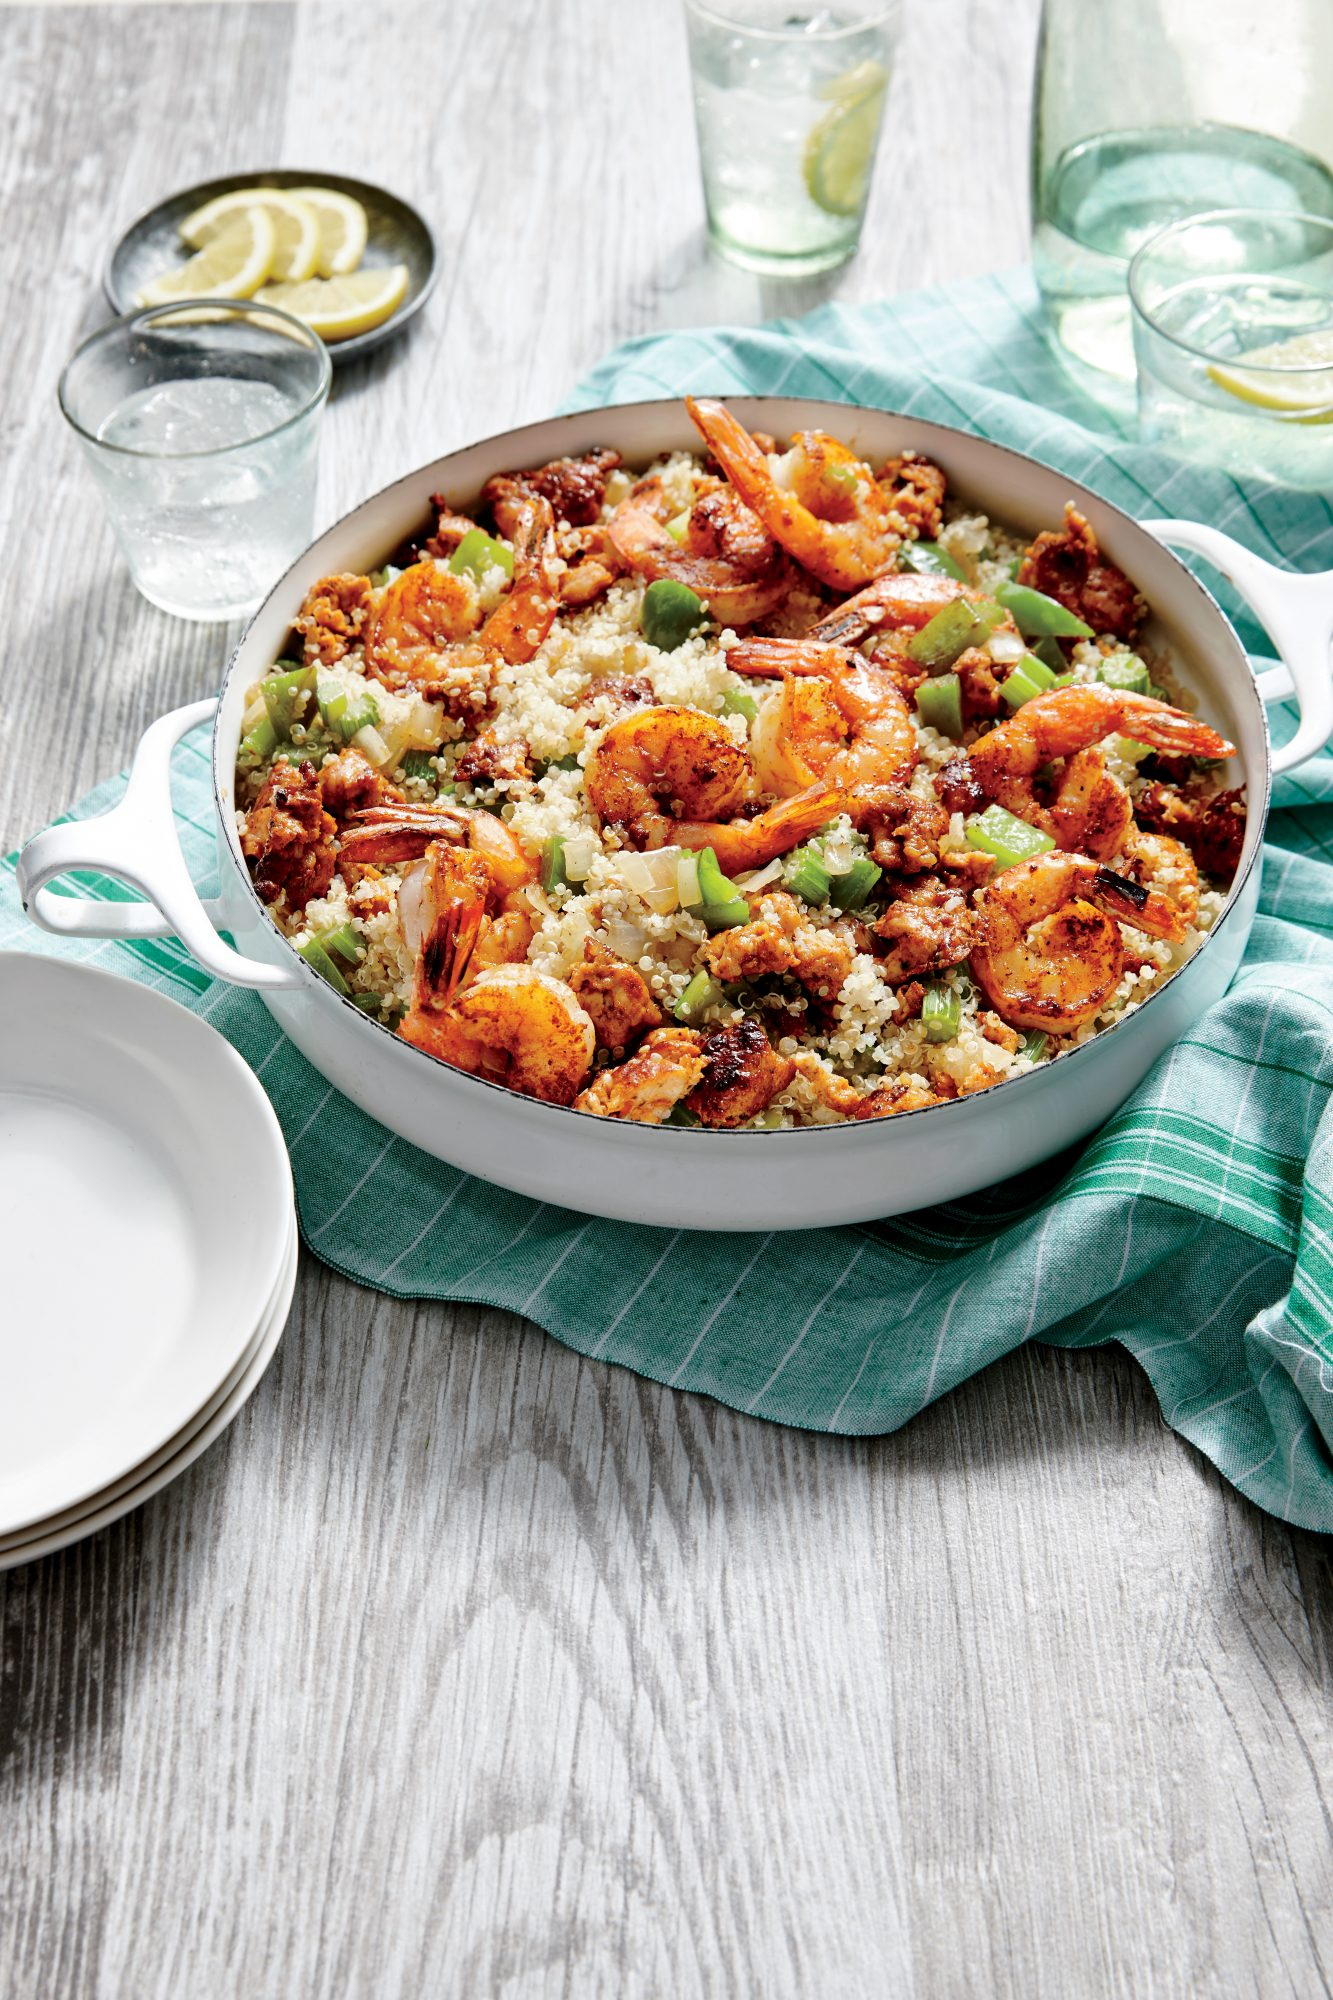 Sausage, Shrimp and Quinoa Skillet